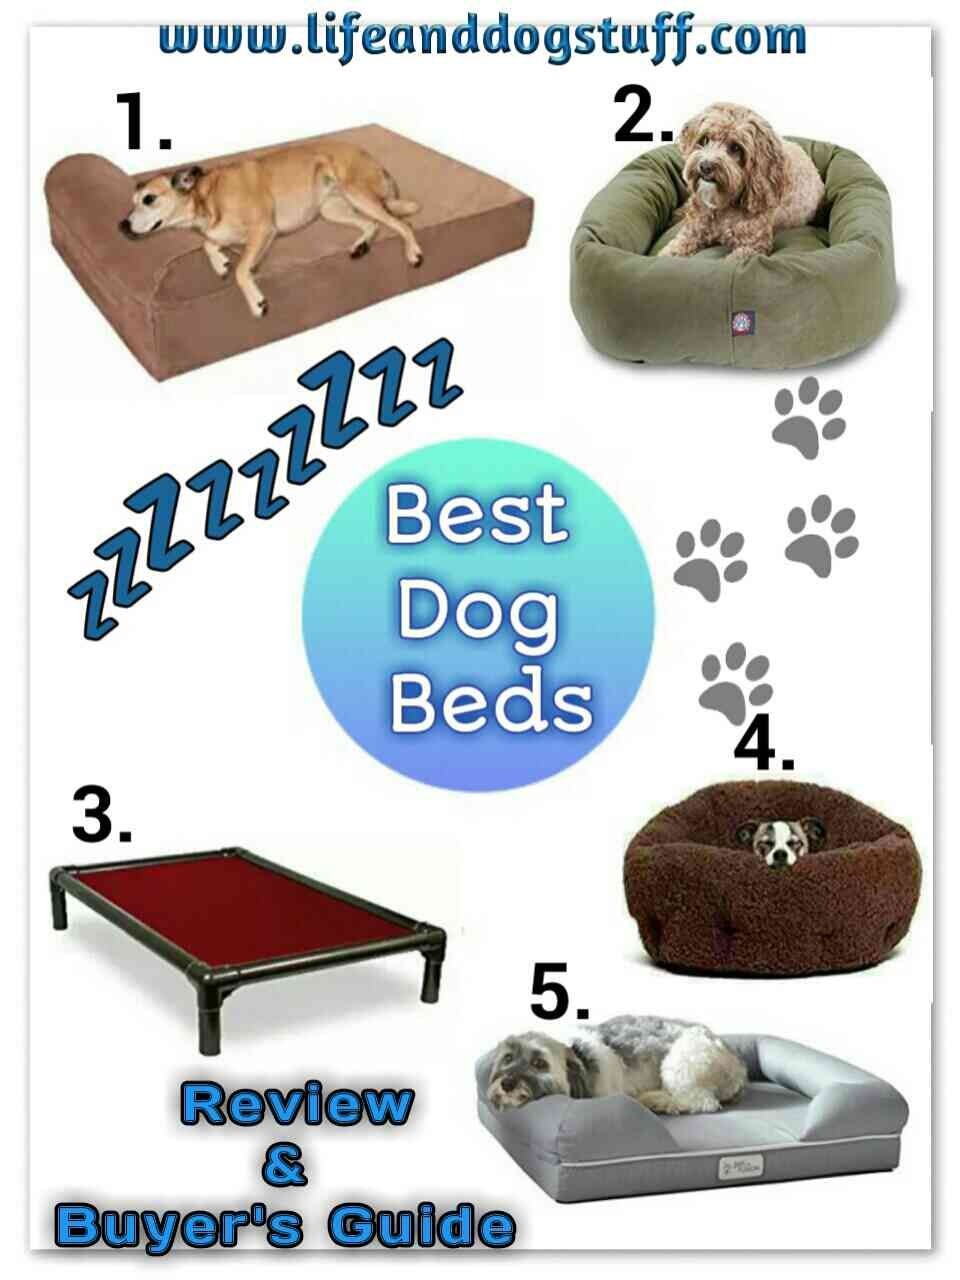 Top 5 Best Dog Beds Review And Buyer S Guide Cool Dog Beds Trendy Dog Beds Dog Bed